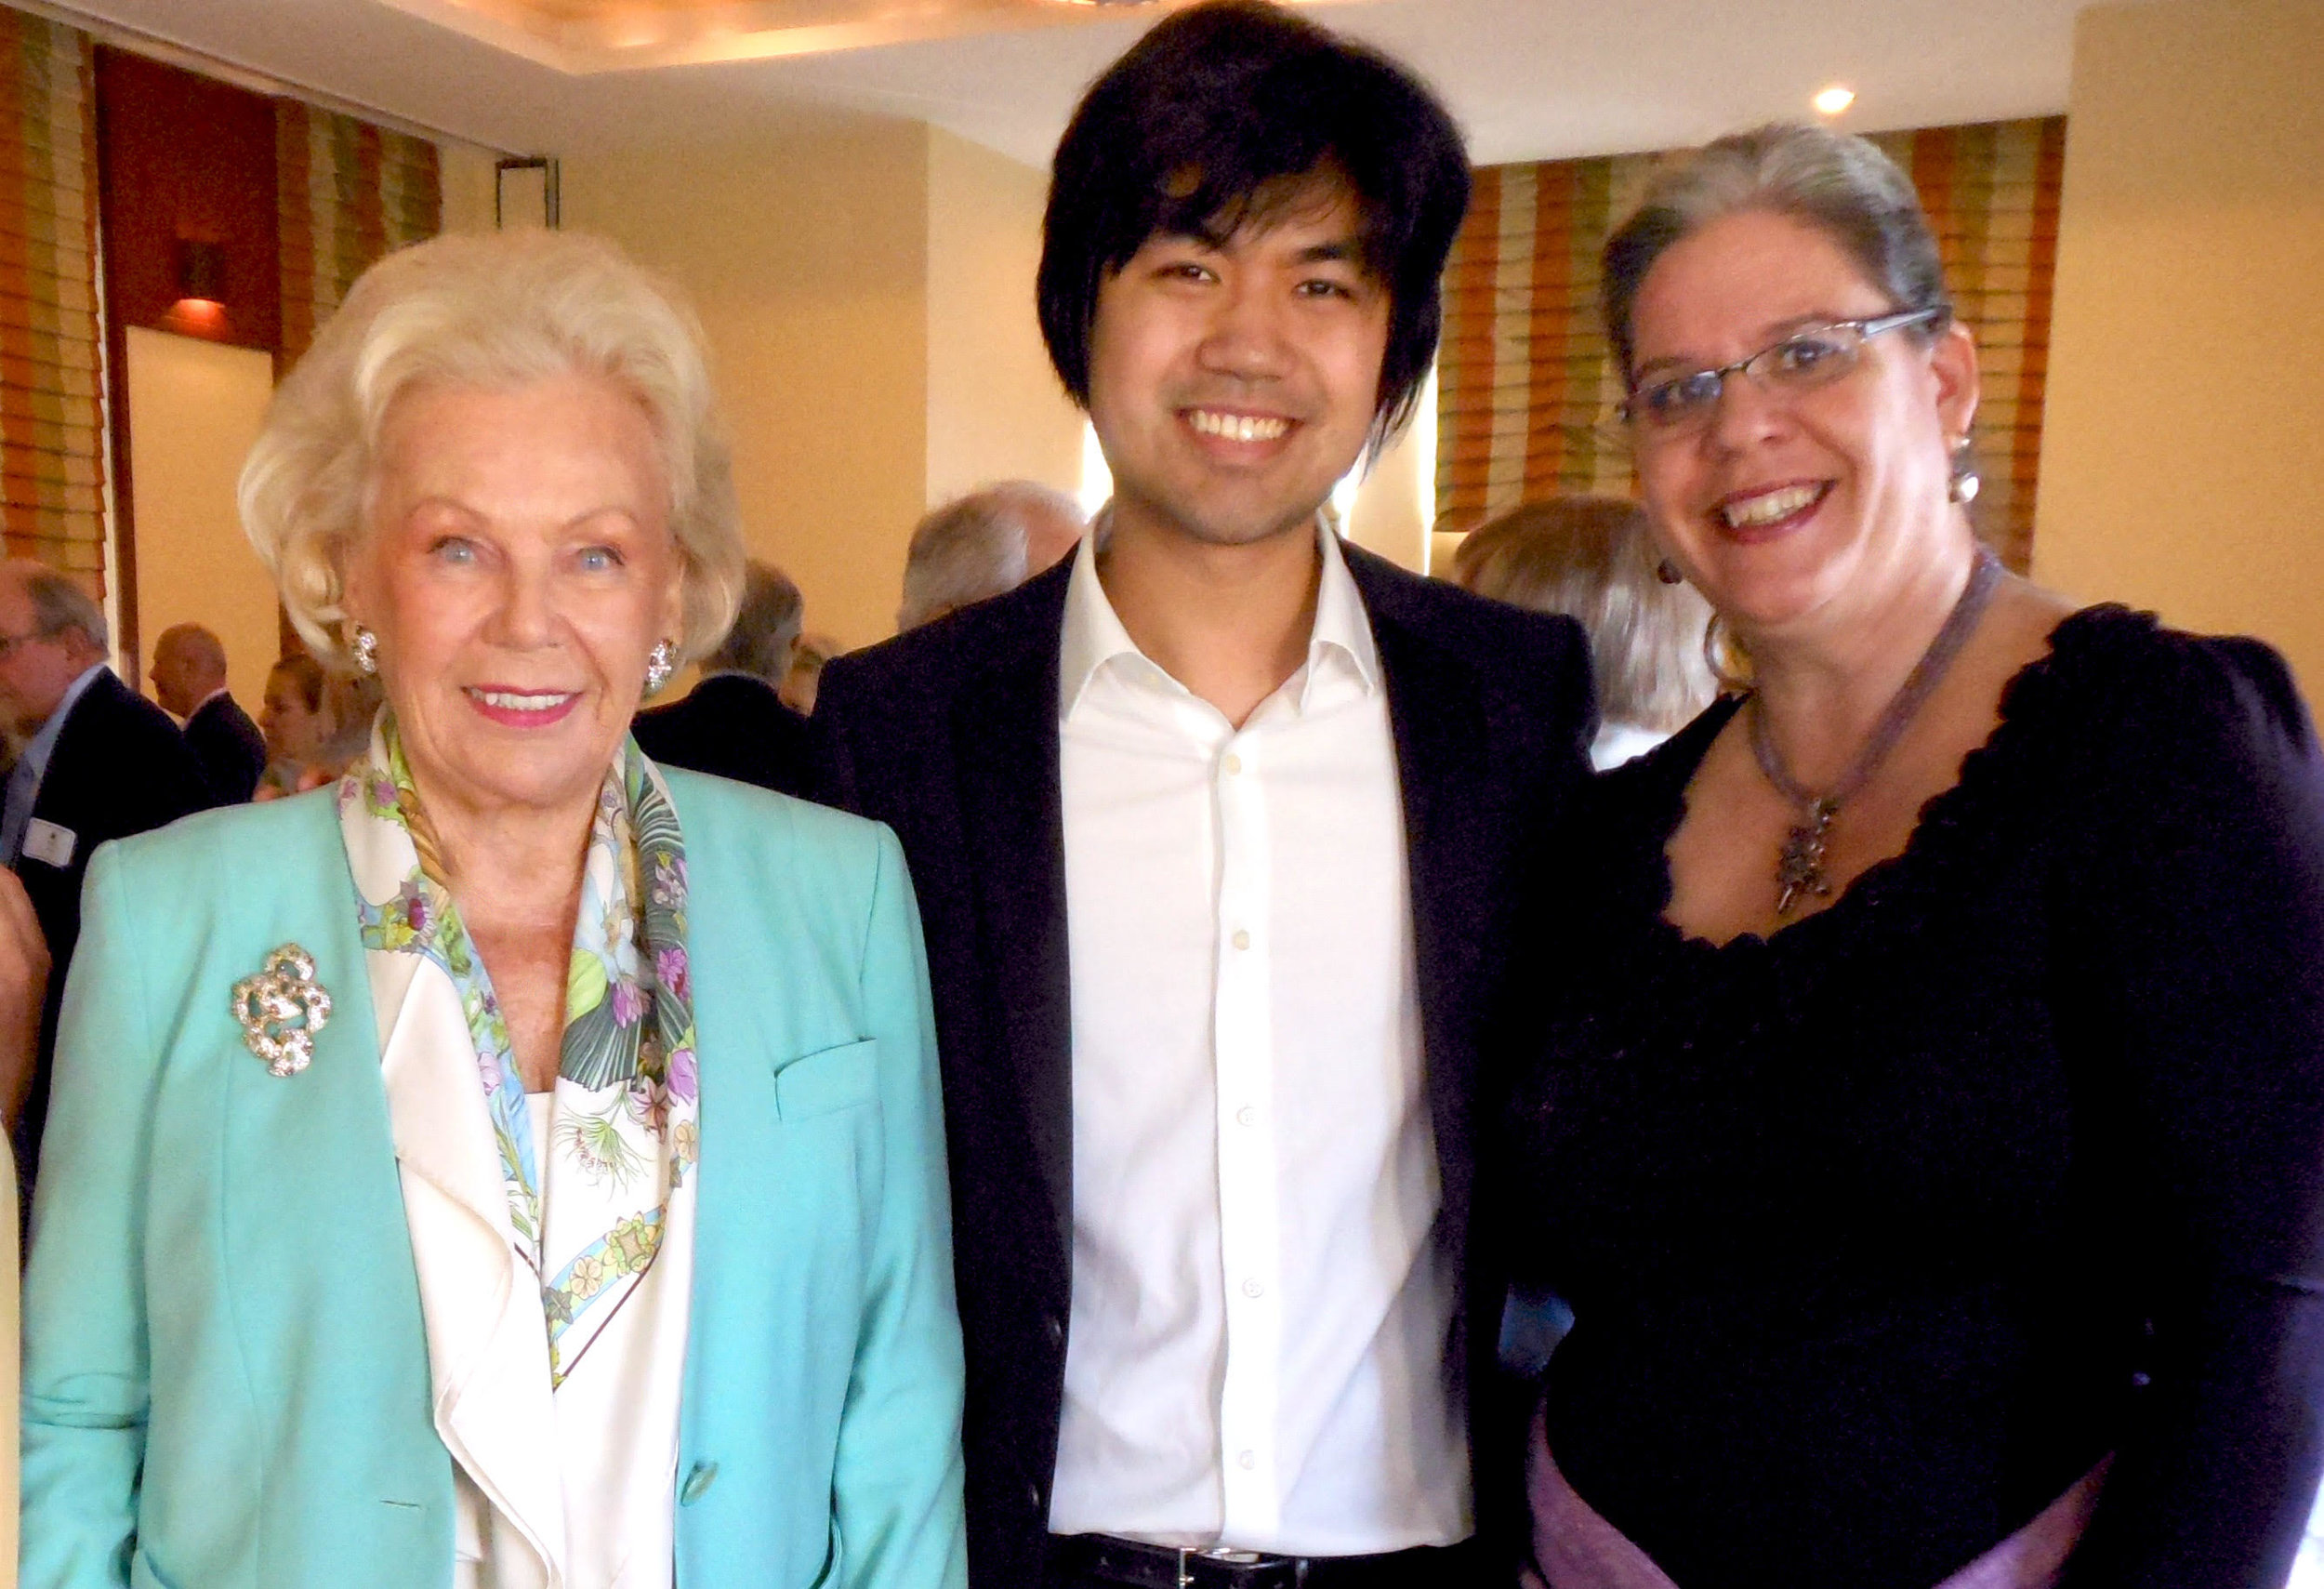 Chopin Salon Concert, March 2014: Lady Blanka Rosenstiel, left, and Barbara E. Muze, right, with pianist Sean Chen, a four-year recipient of the Chopin Foundation's Scholarship (2003-2006). In 2013, Sean won the American Pianists Association Awards and a Bronze medal at the Van Cliburn International Competition.